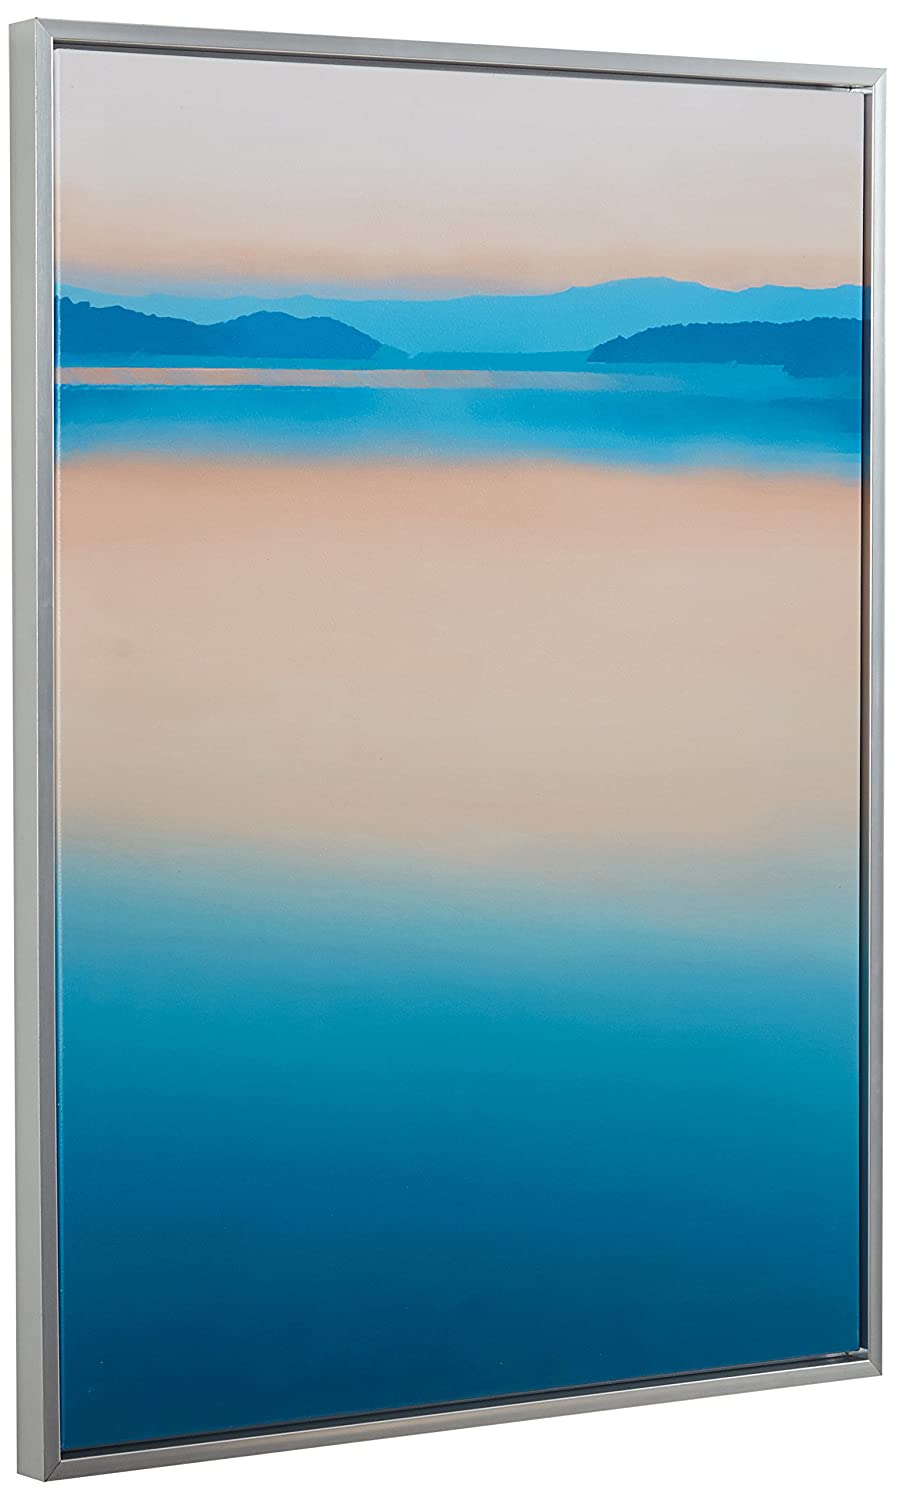 Calm Paradise Water Horizon at Dawn Canvas Wall Art, Silver Frame, 17.75 x 21.75